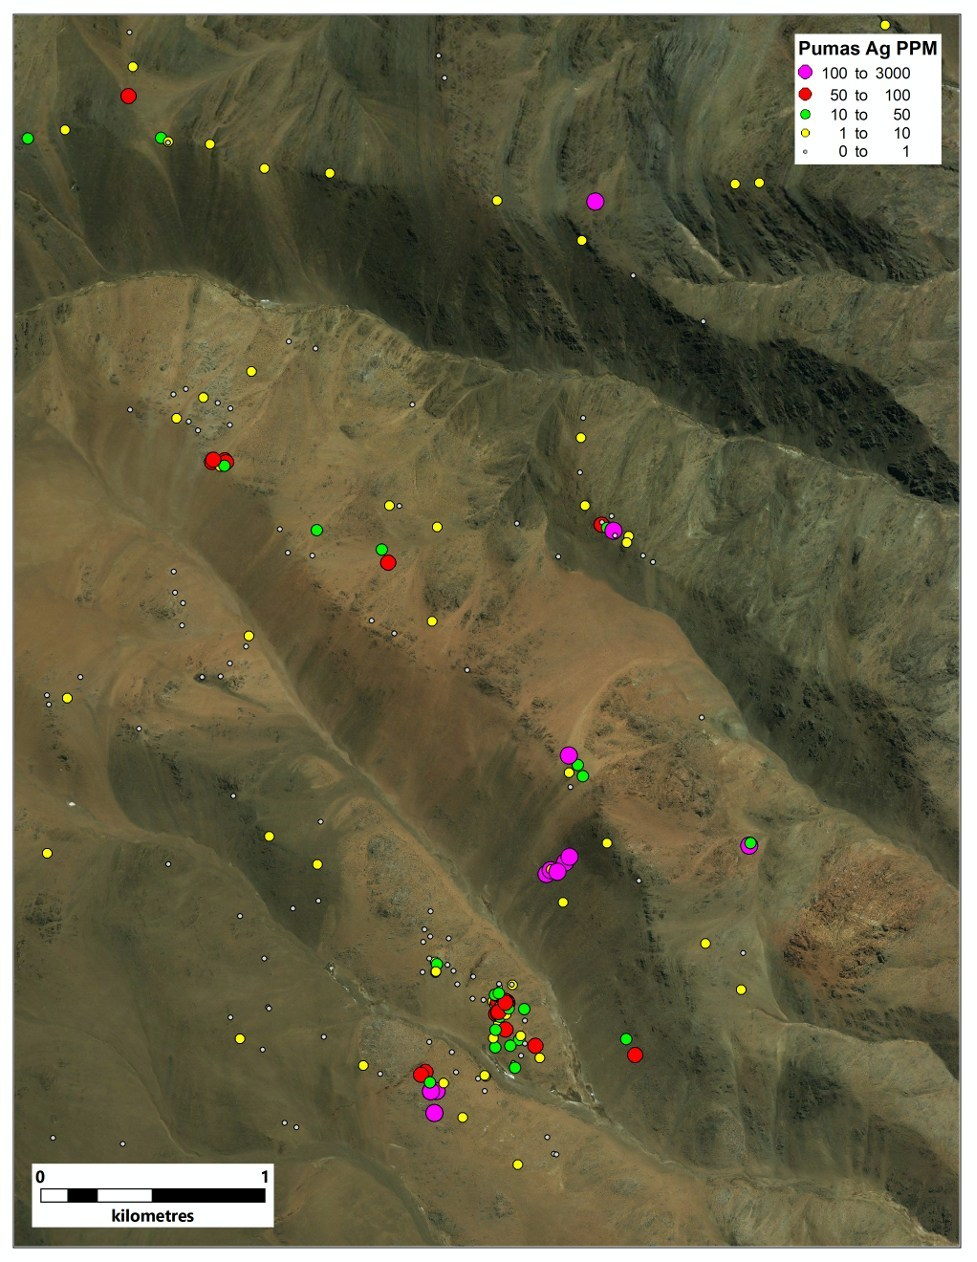 Figure 4. Ag values at Los Pumas (CNW Group/Sable Resources Ltd.)